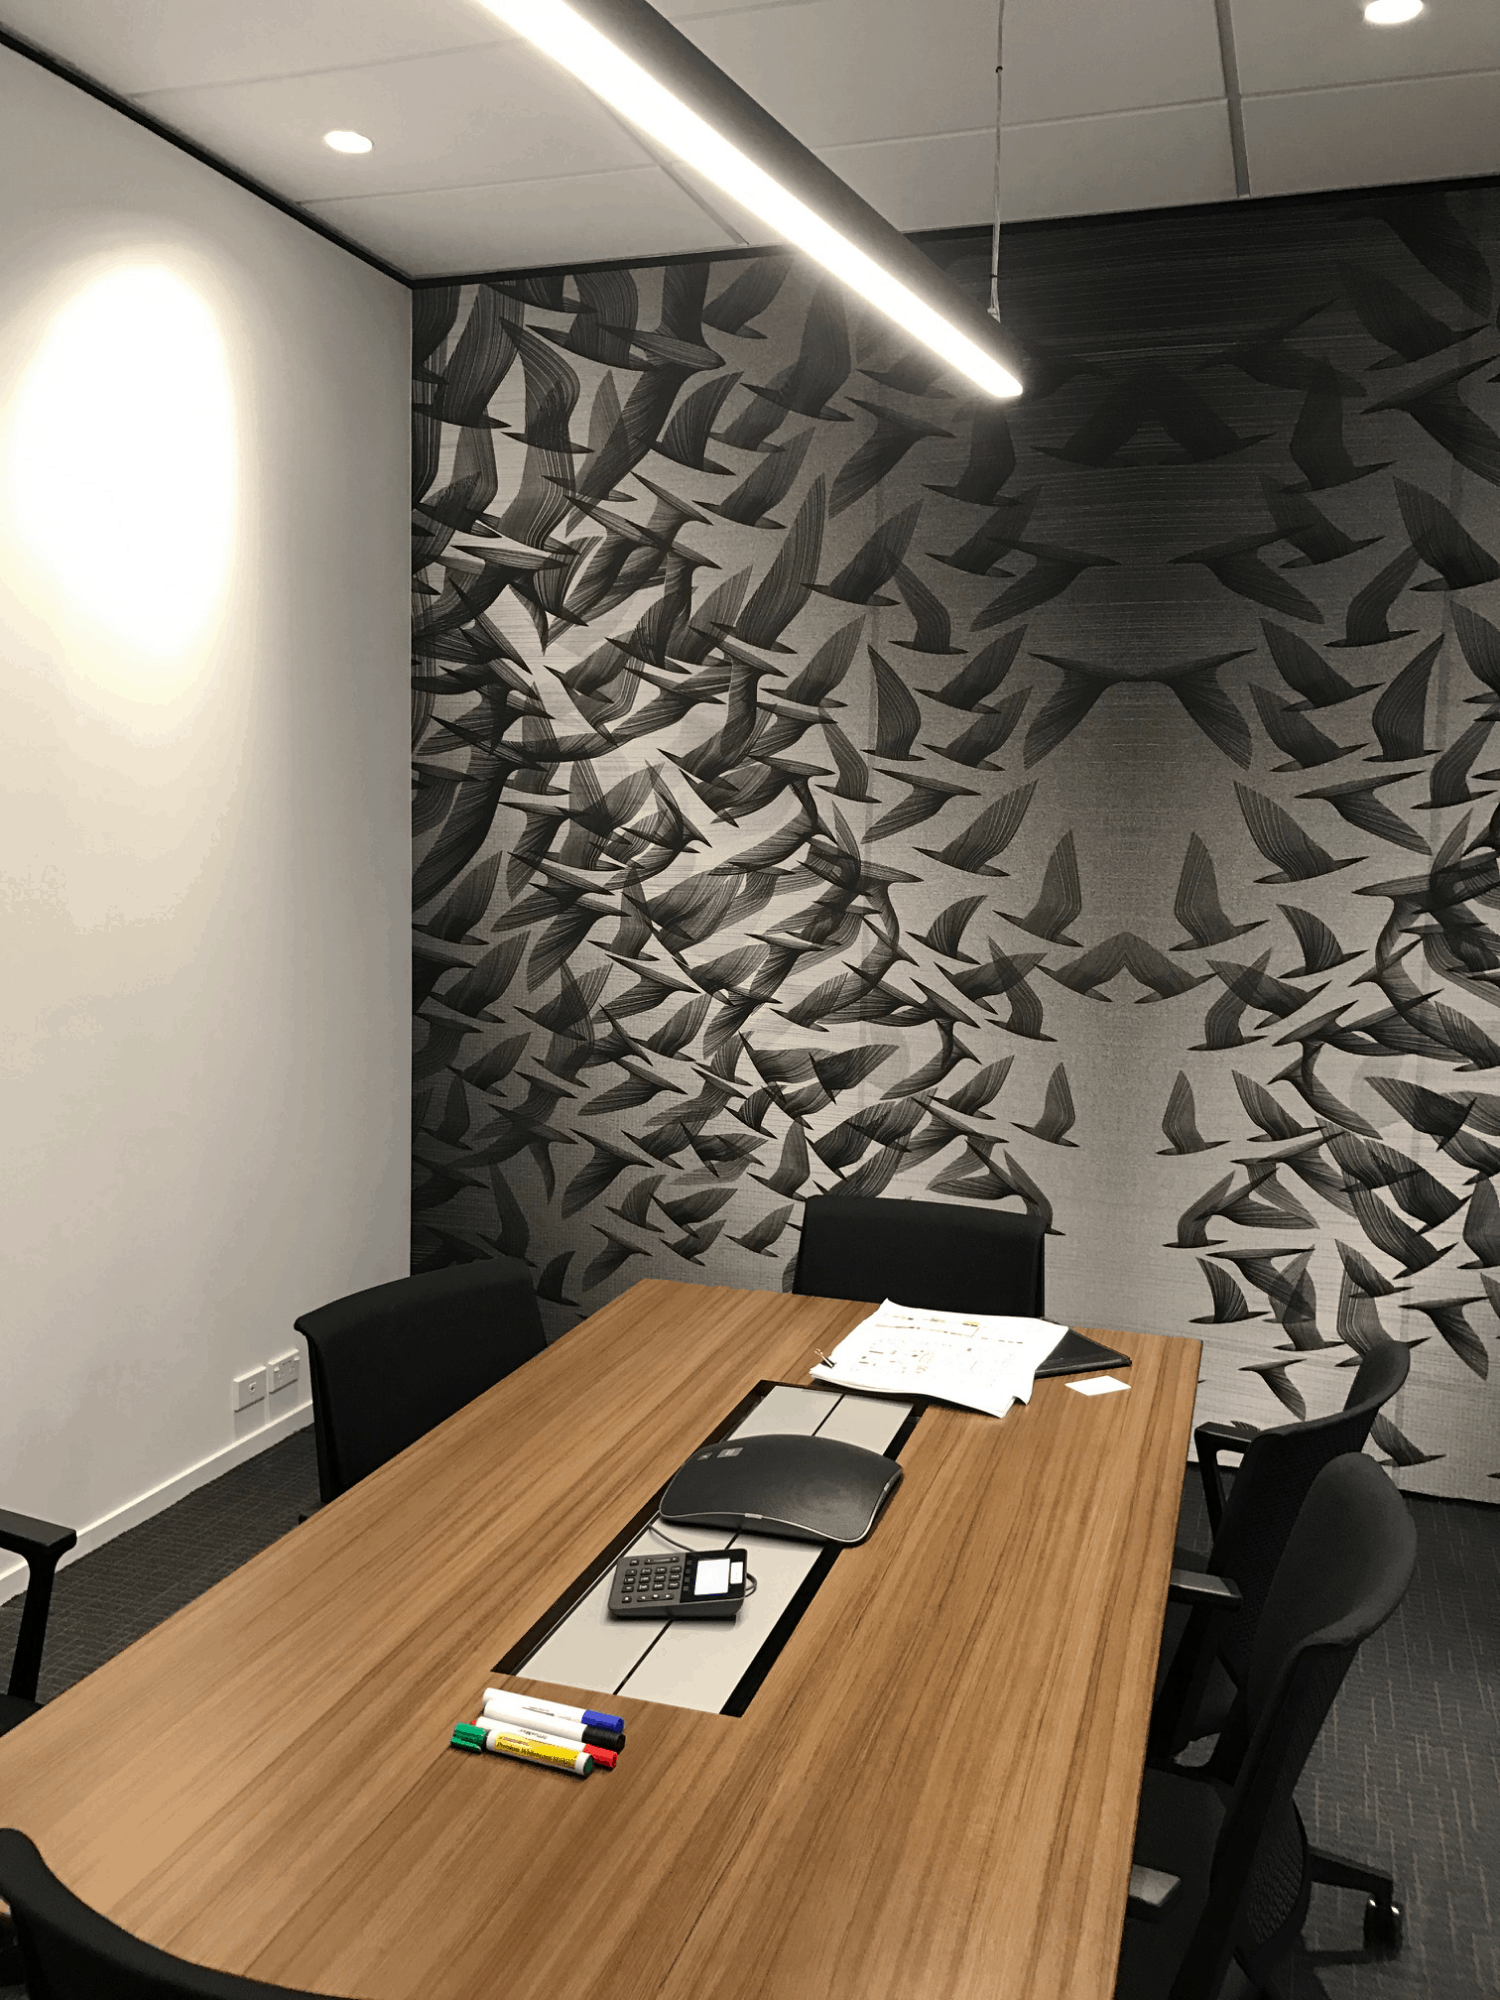 IBM office in Auckland workplace meeting room design with feature art wall with birds on it